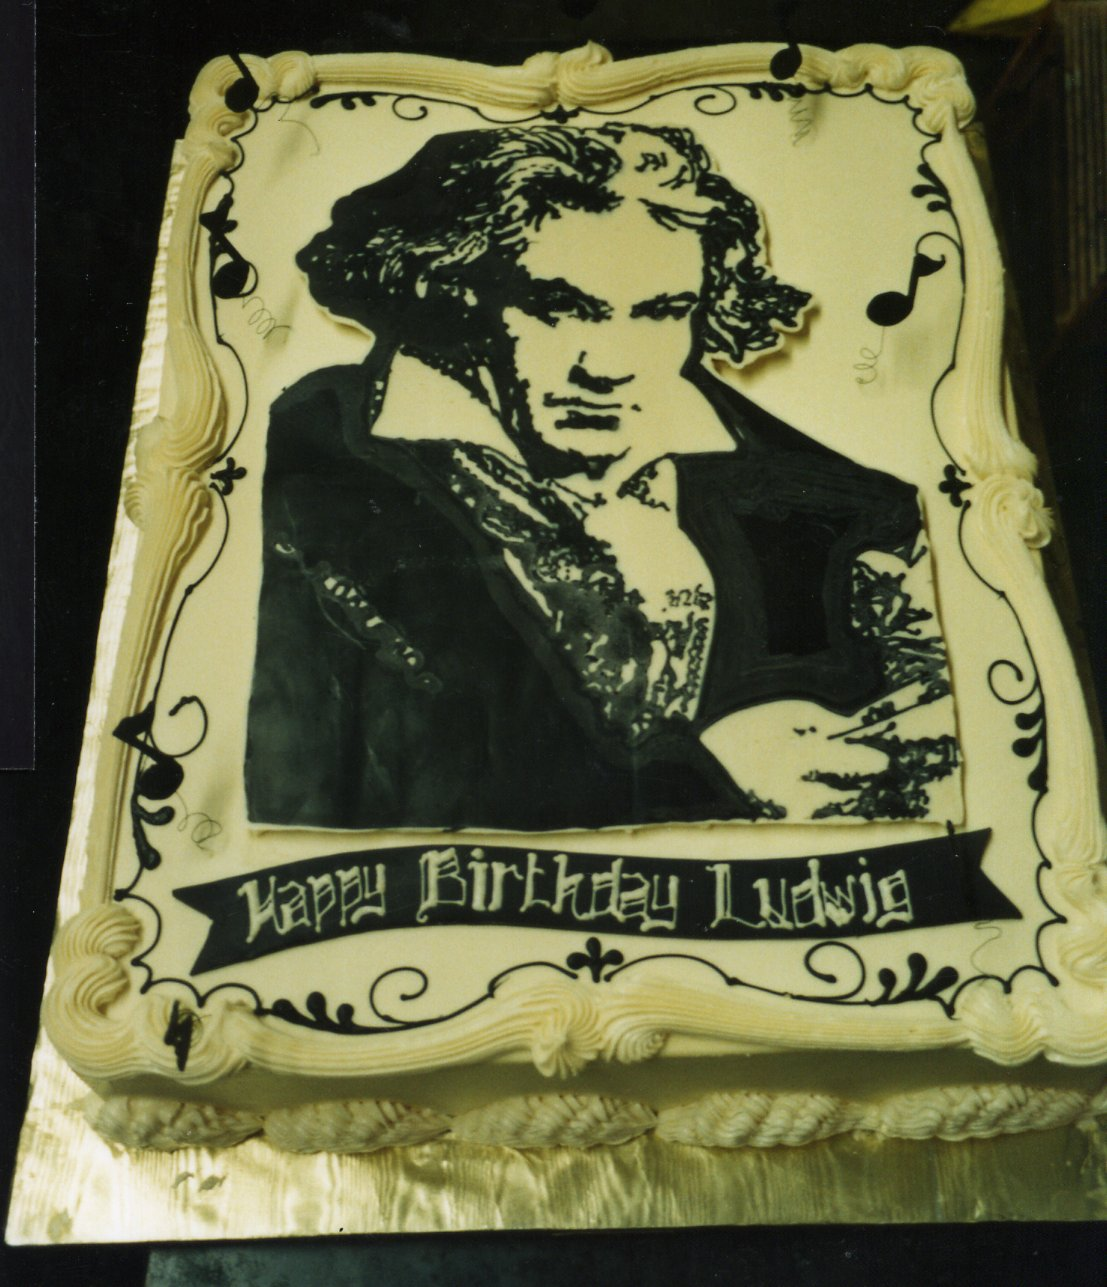 Beethoven's birthday cake